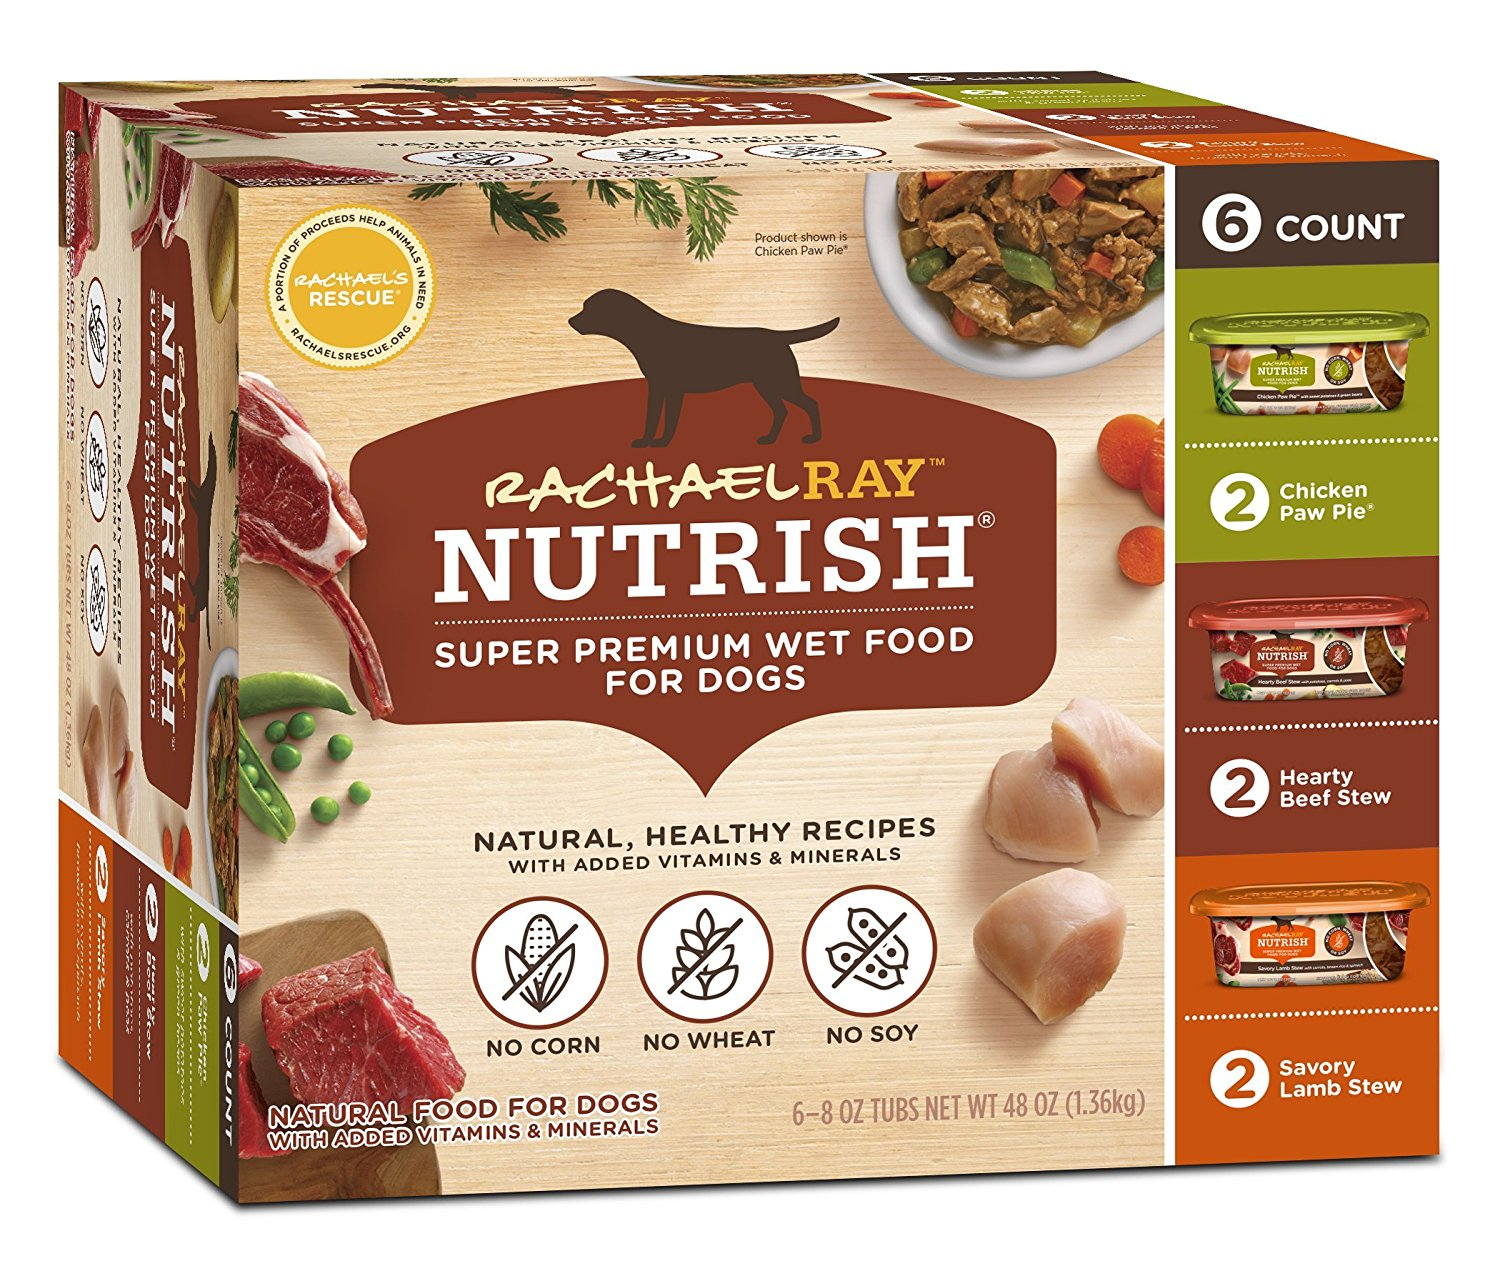 (AK, HI, PR Only) Rachael Ray Nutrish Natural Wet Dog Food Variety Pack (8 oz Pack of 6)